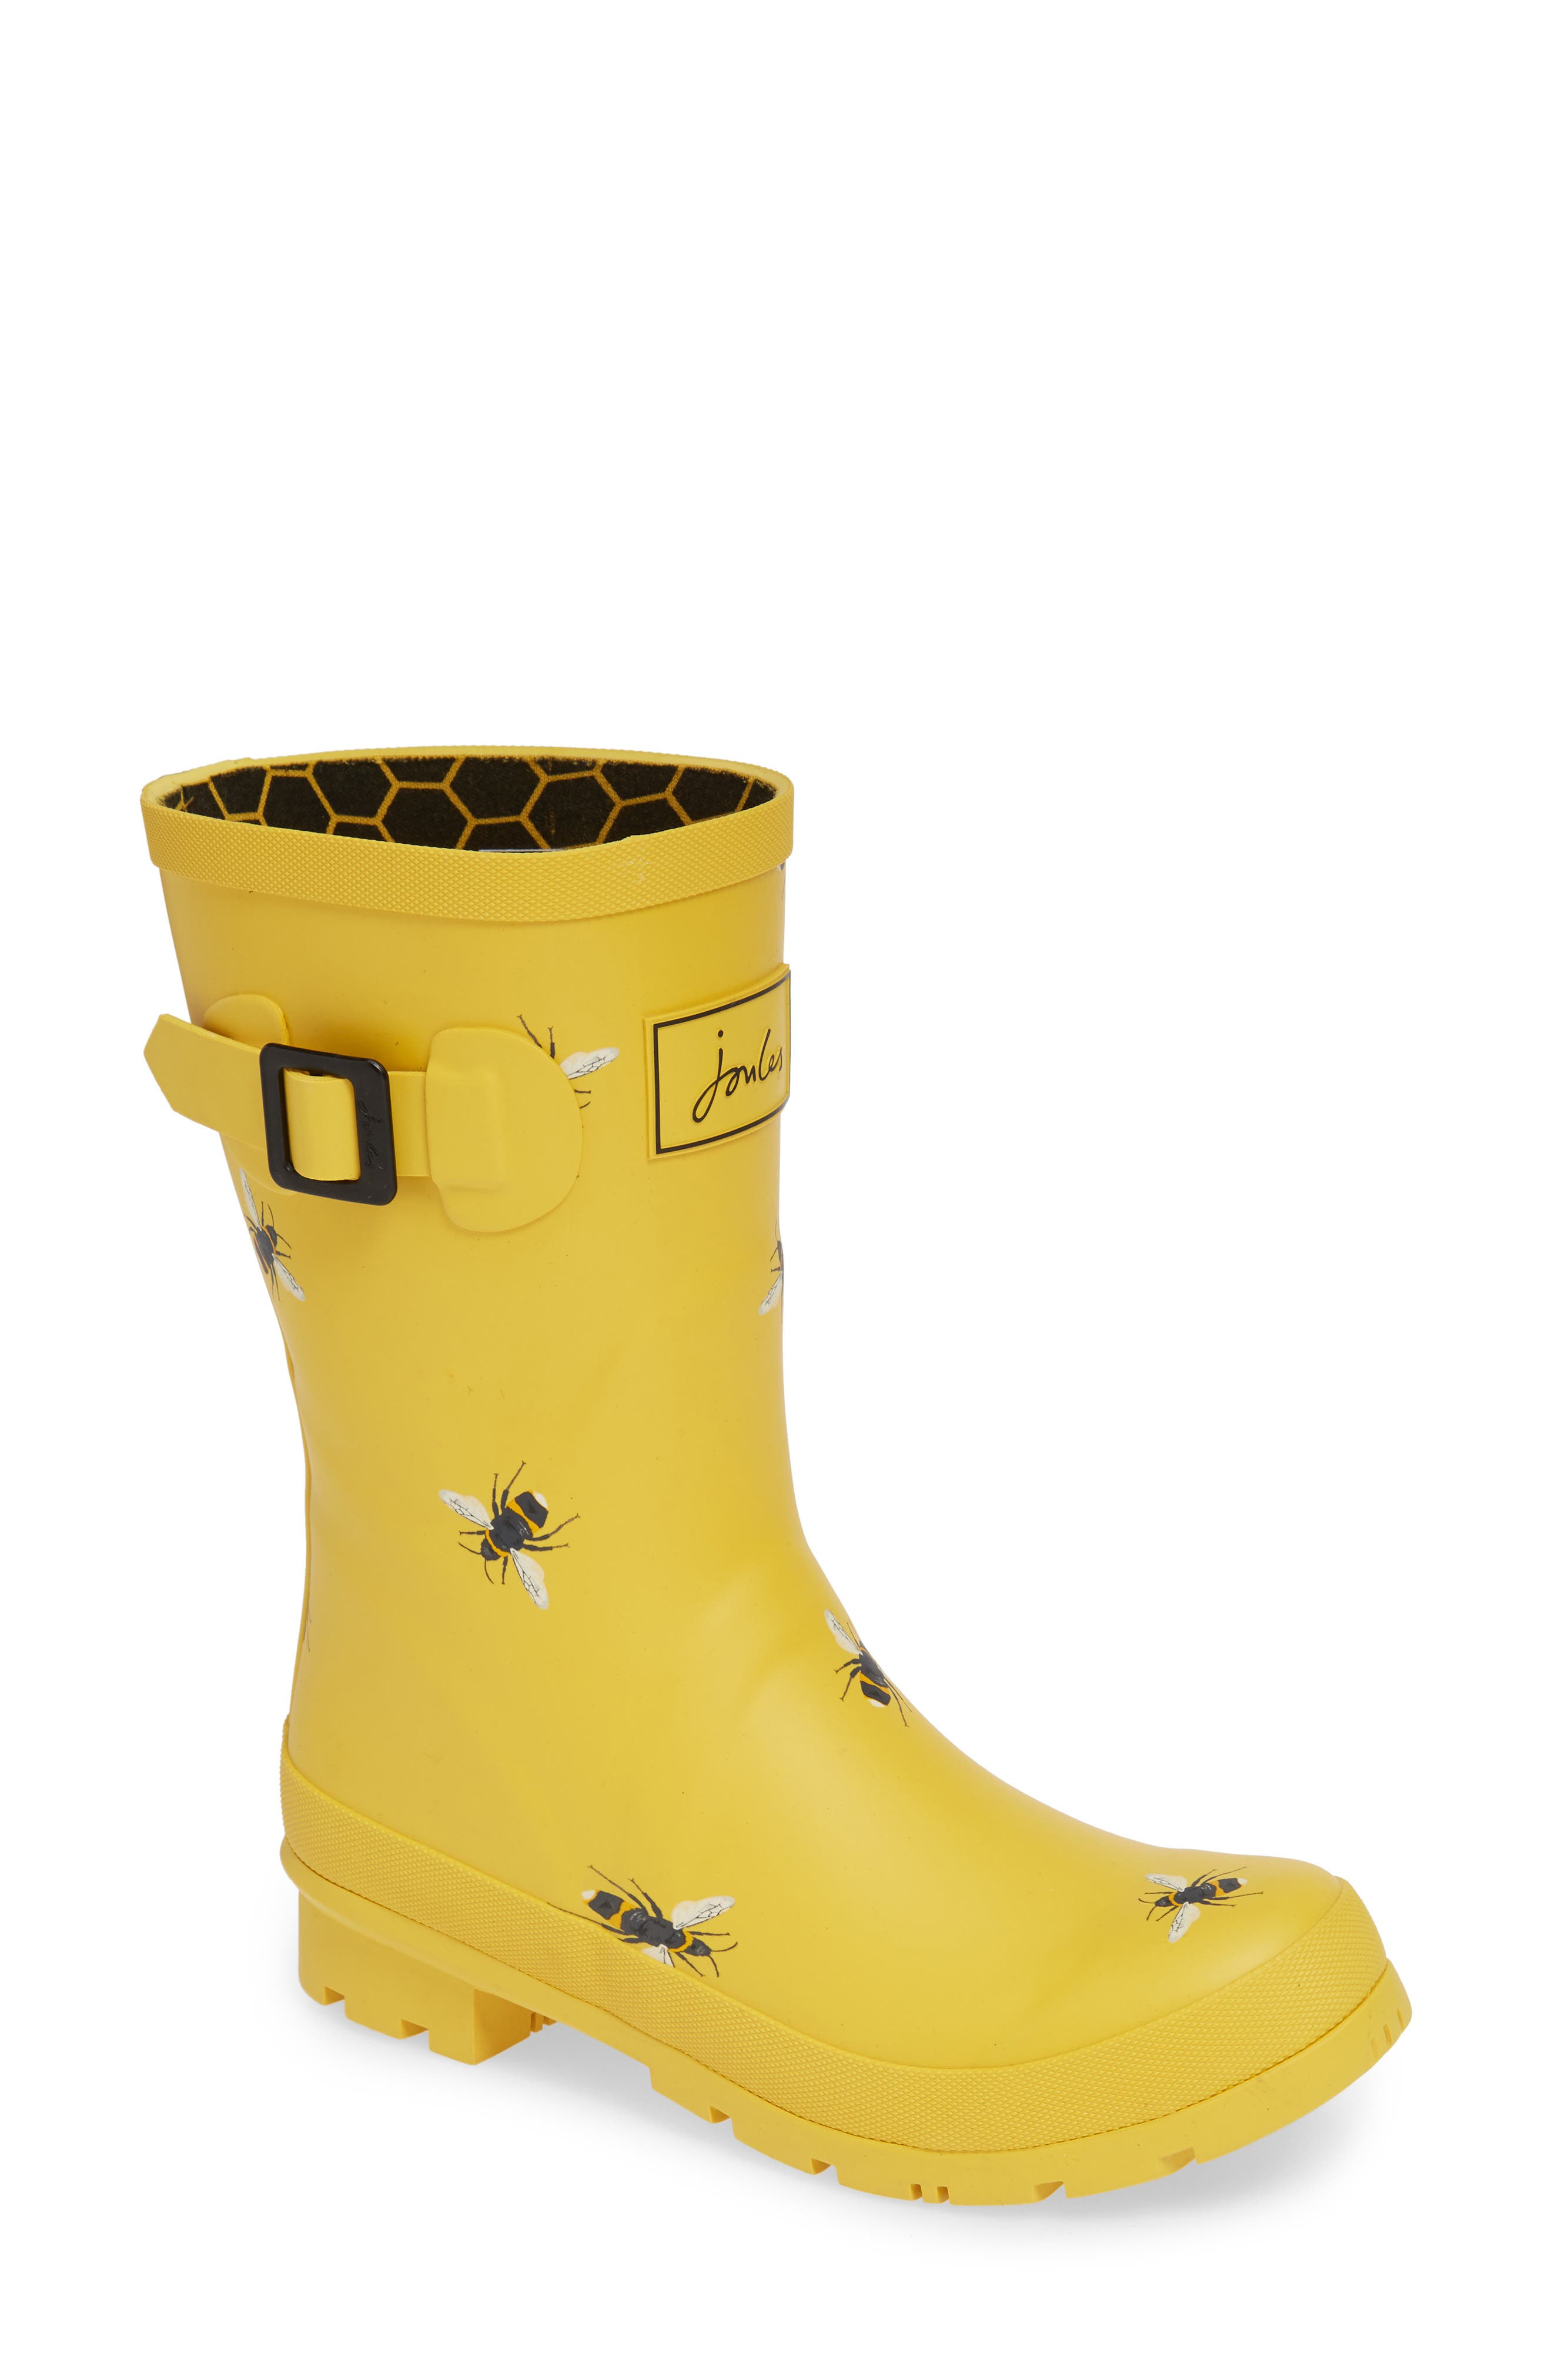 Print Molly Welly Rain Boot,                         Main,                         color, GOLD BOTANICAL BEES